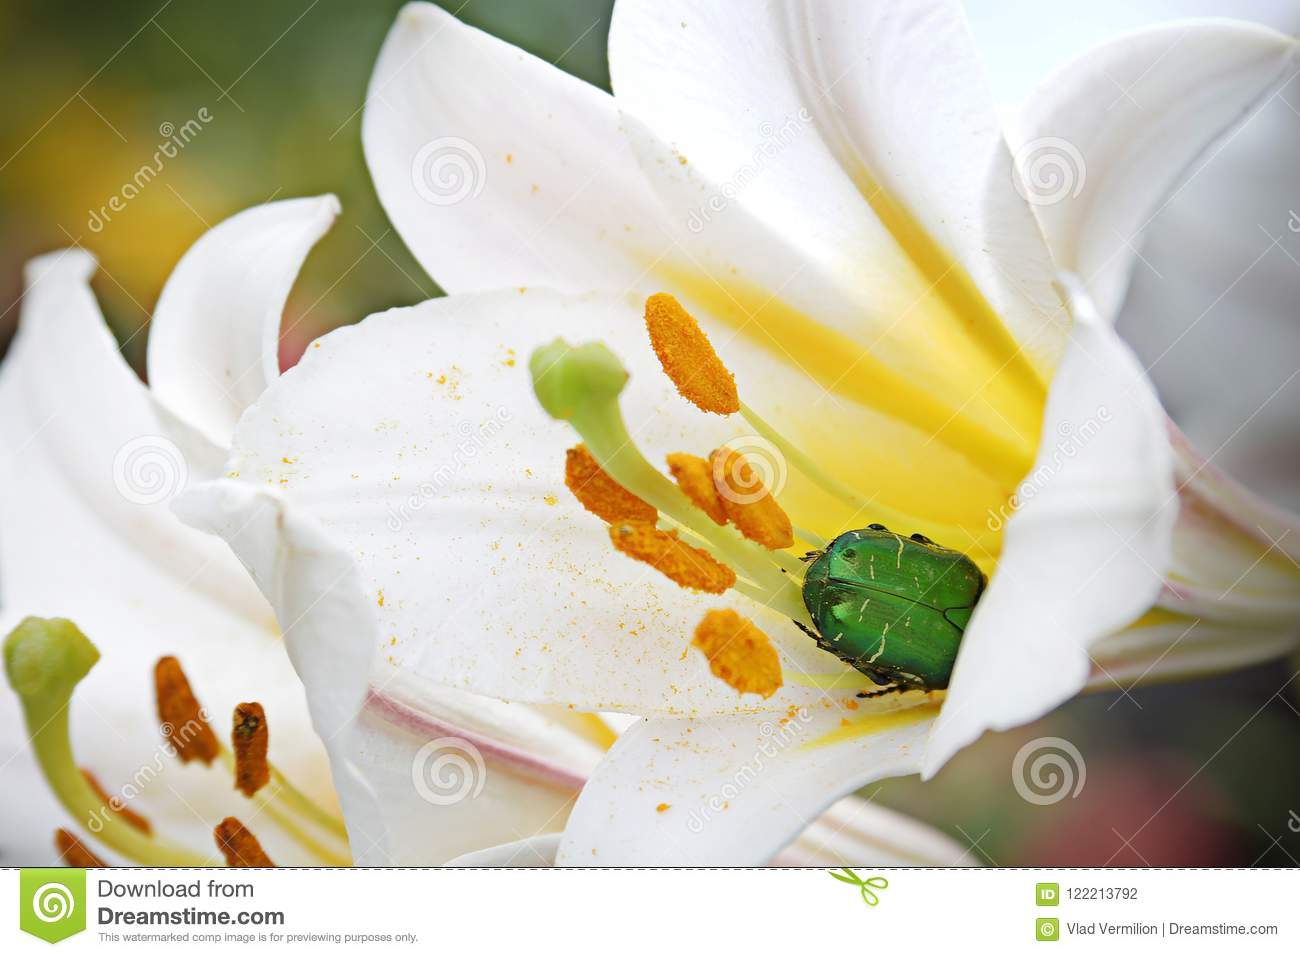 A White Flower With Yellow Middle And Green Bug Inside Stock Photo